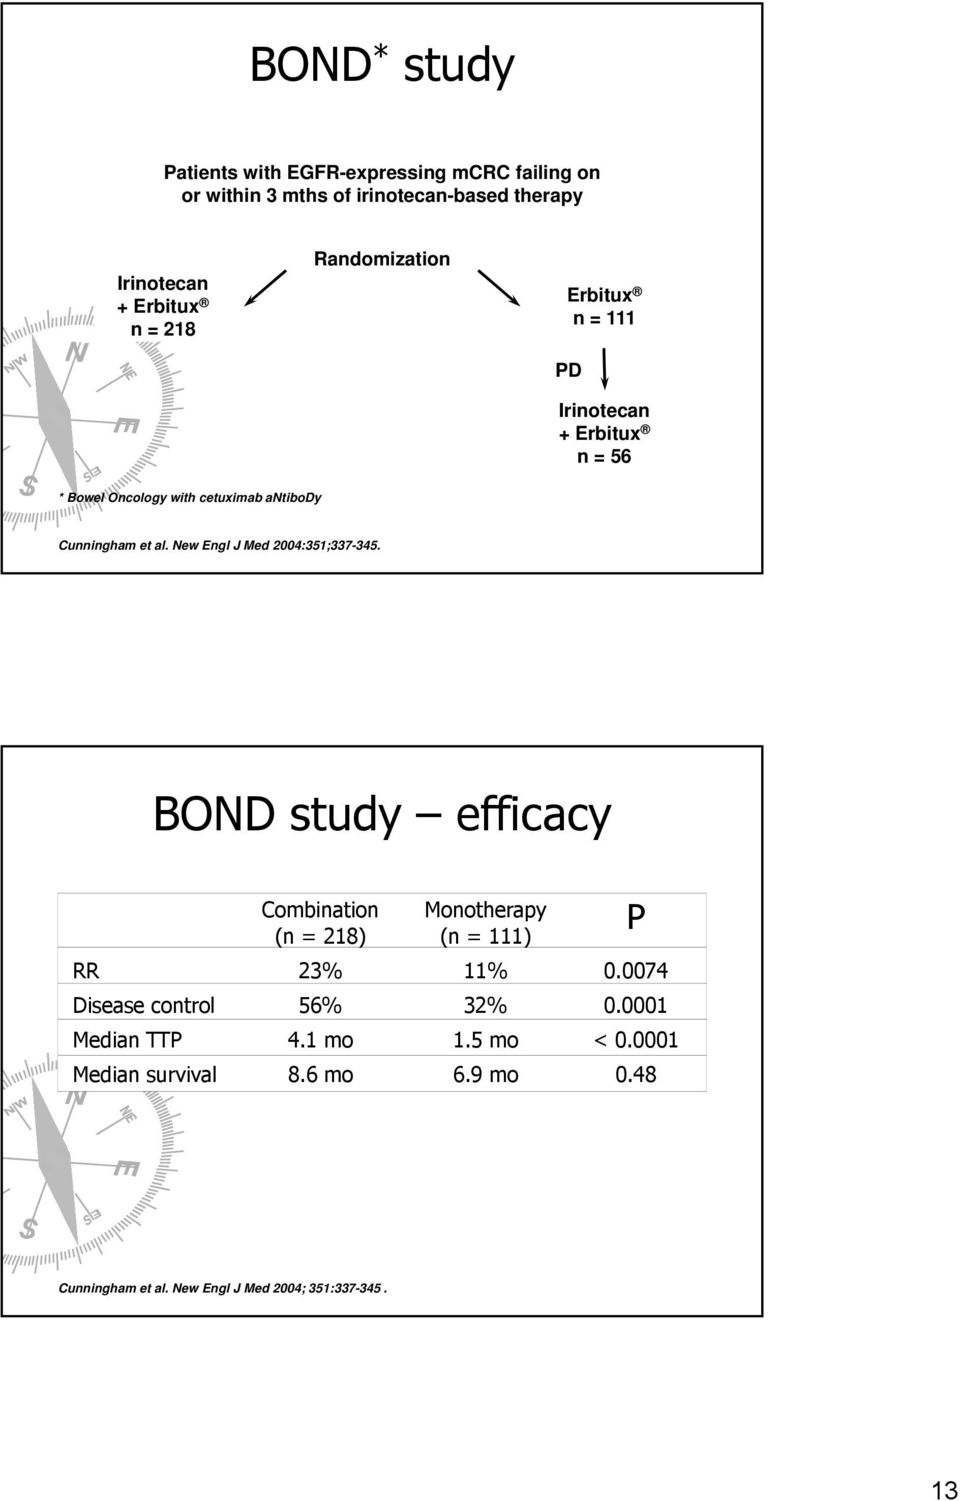 New Engl J Med 2004:351;337-345. BOND study efficacy Combination (n = 218) Monotherapy (n = 111) RR 23% 11% 0.